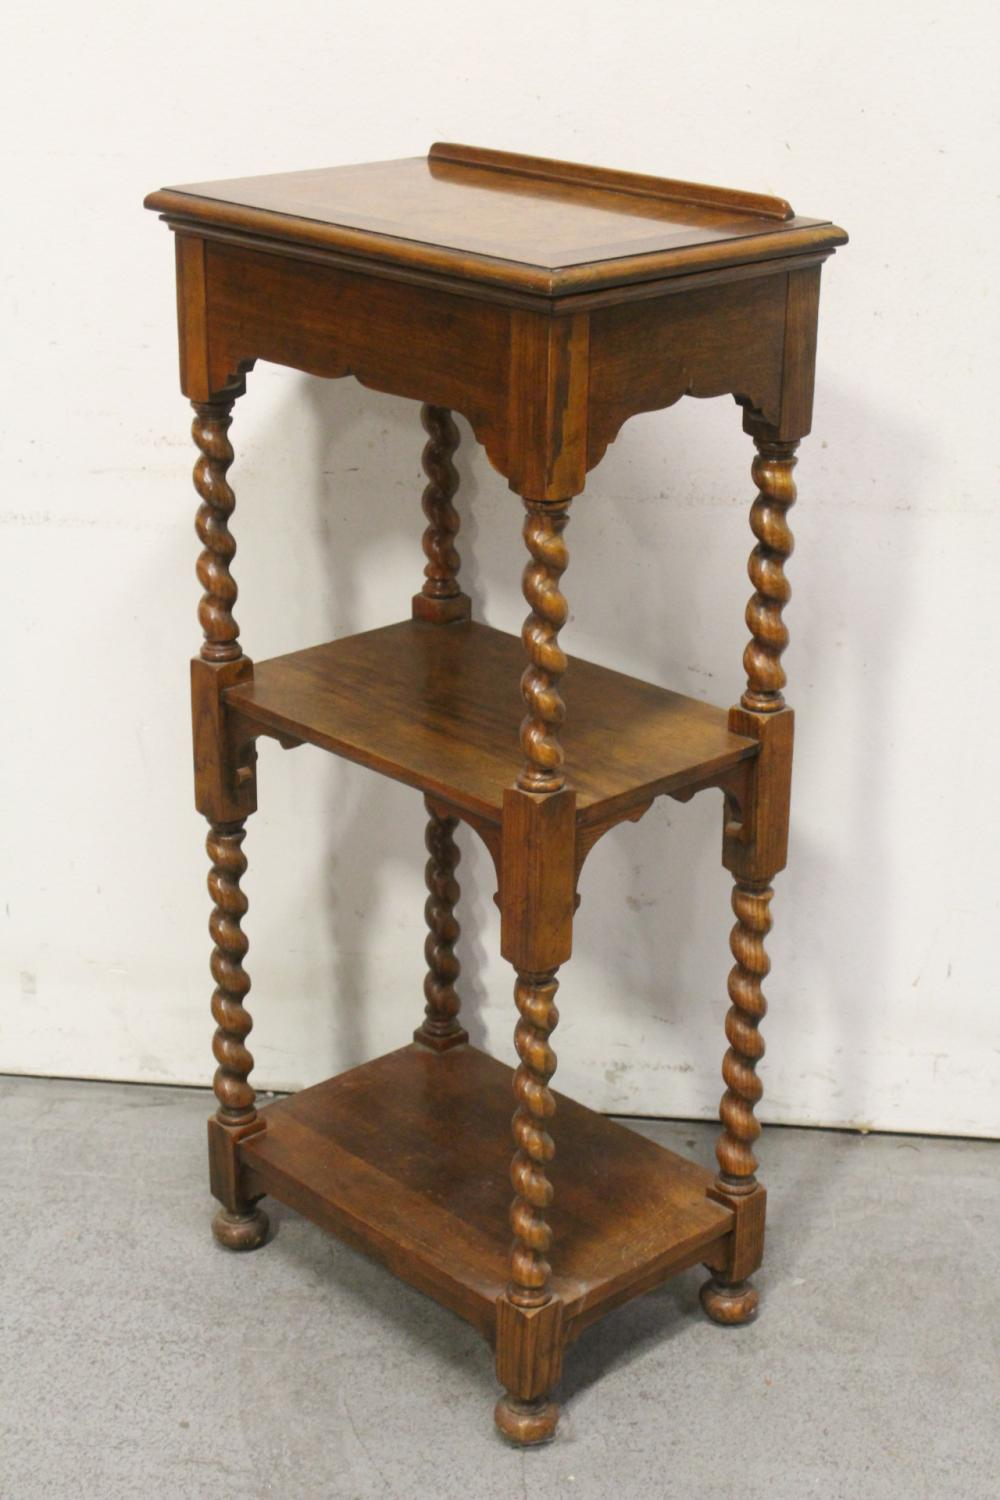 A burl walnut top 3-tier shelf stand w/ barley twist legs